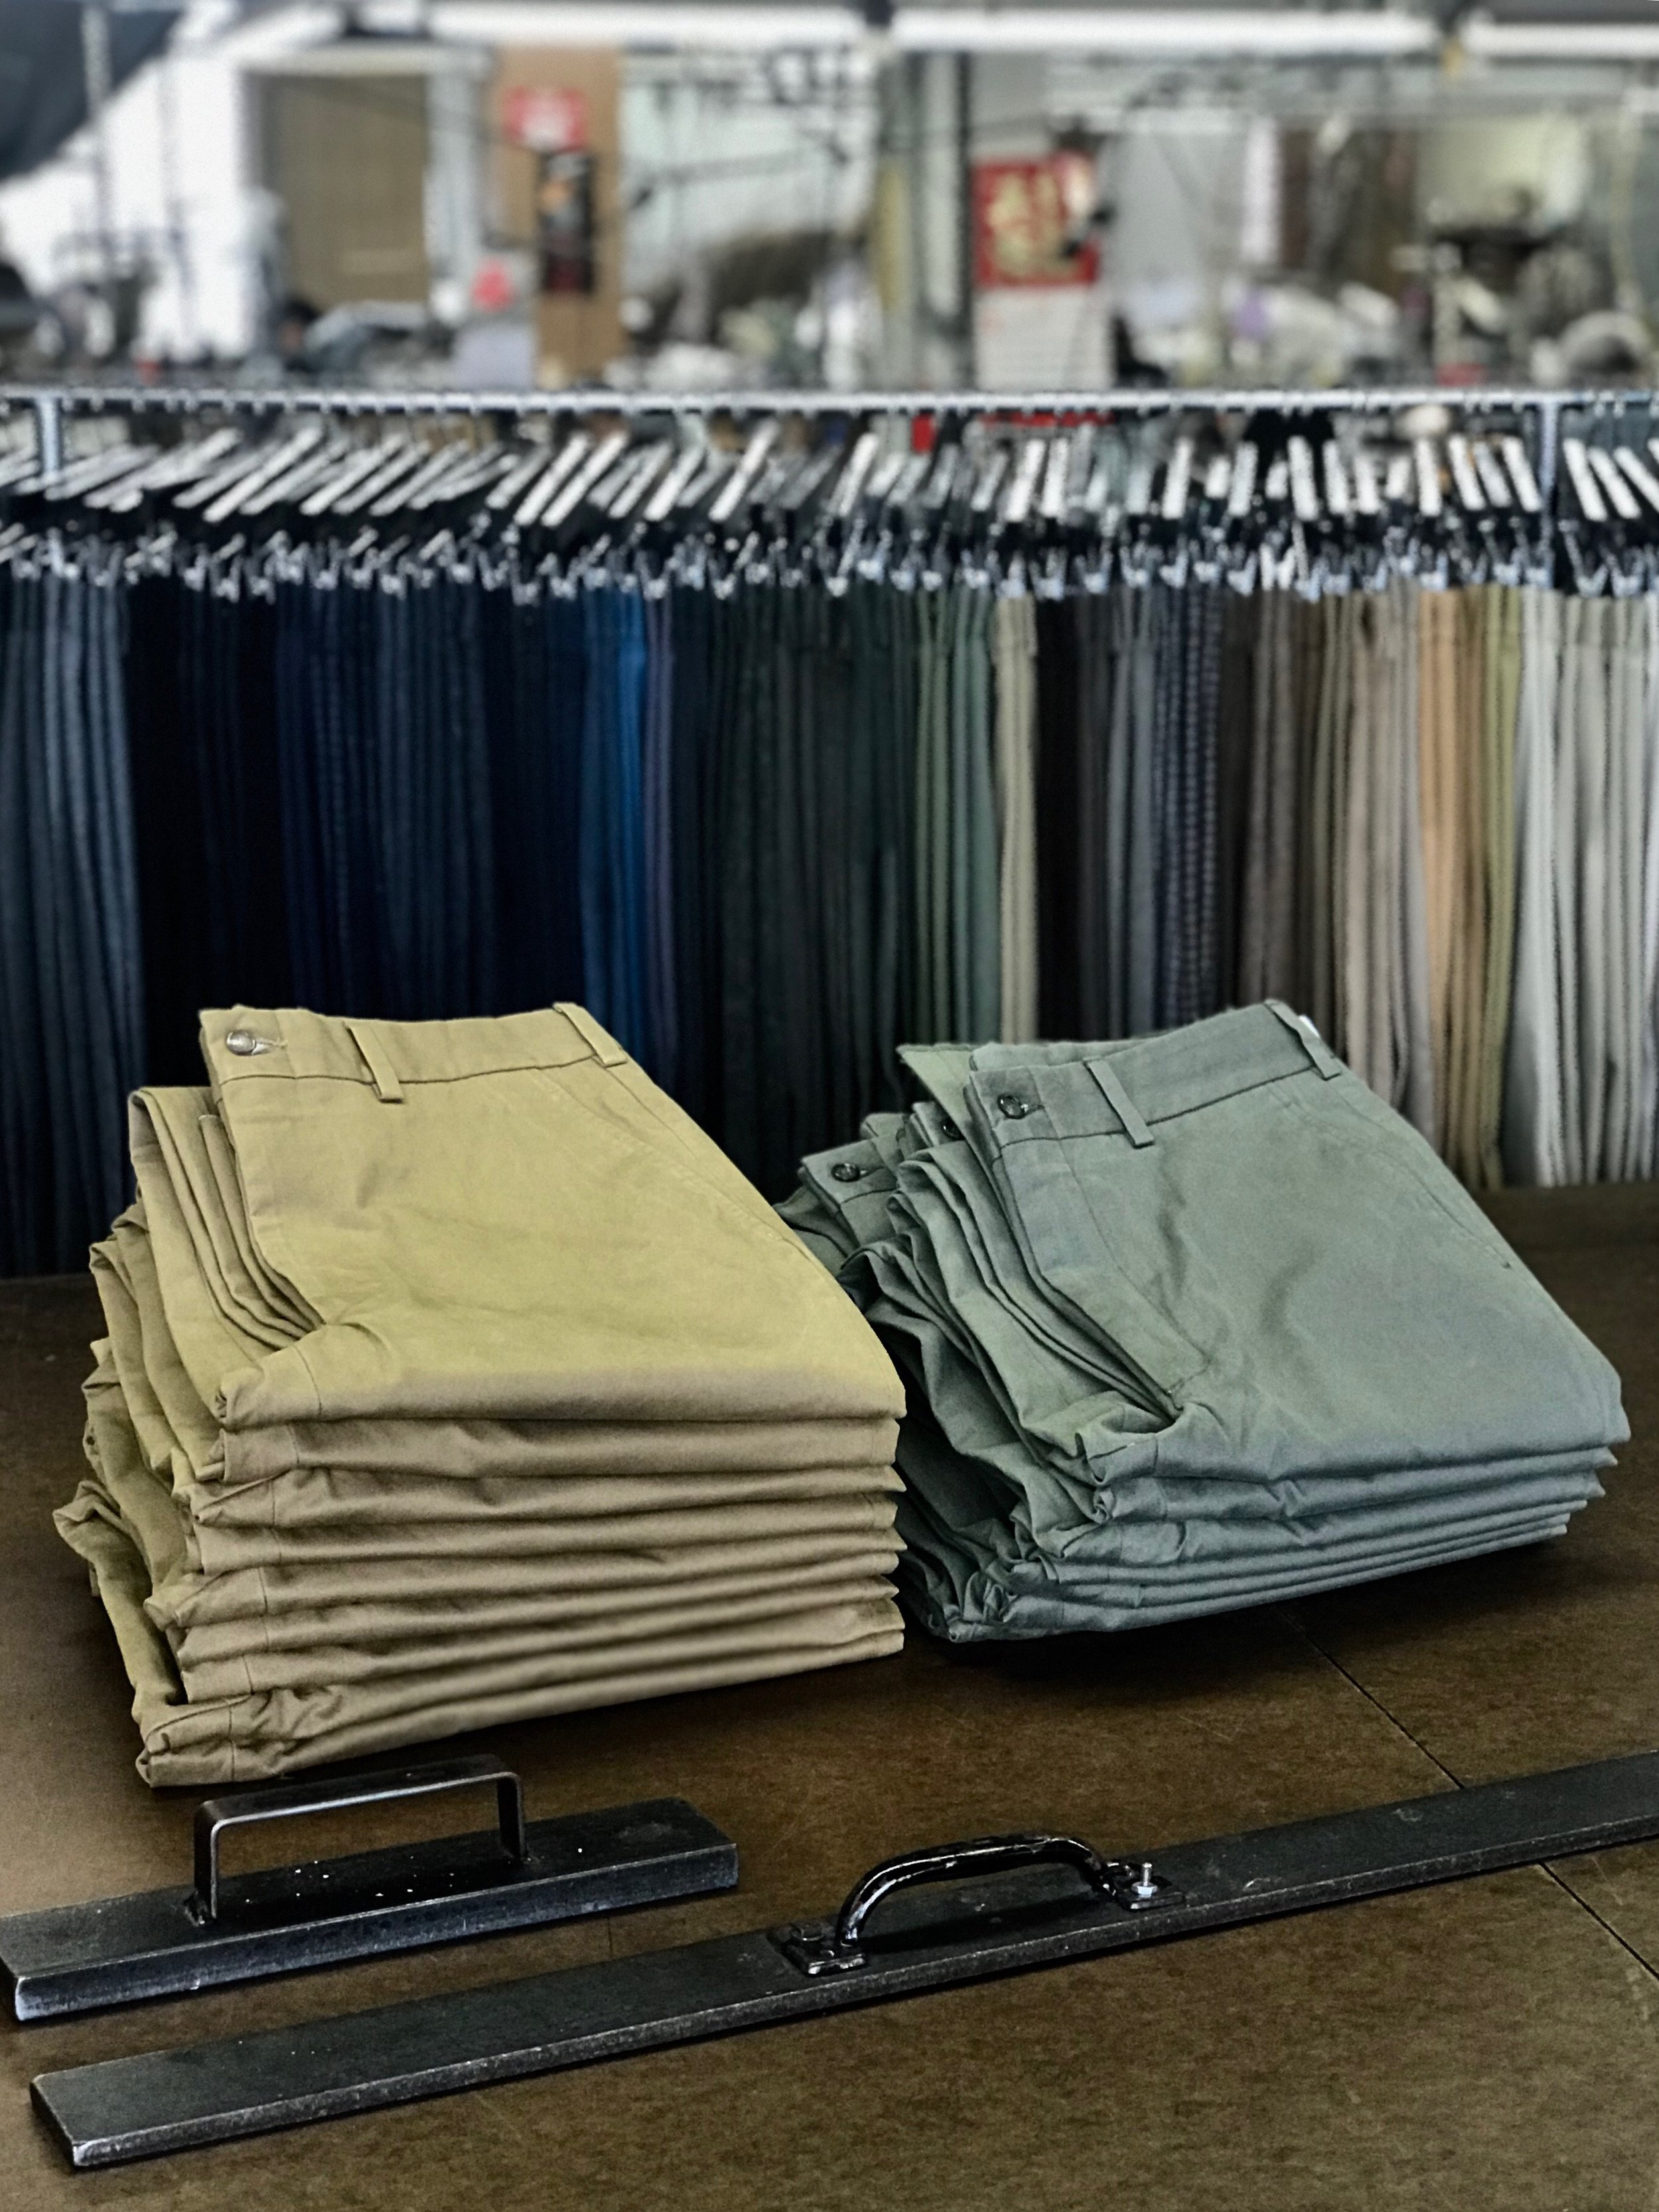 """Welcome to the Hertling Factory Outlet Store - In our pursuit of manufacturing the finest trousers, we purchase a great deal of fabric, produce samples and inventory for Hertling's design and development- as well as our retail partners. Our Factory Store provides customers an opportunity to buy beautifully handcrafted trousers at a unique price and allows us to run lean.We invite you to take advantage of deep savings for this selection of samples, excess inventory, or styles from previous seasons. We'll constantly be adding inventory as it is available, so check back frequently for hidden """"factory finds"""".Sales of this special opportunity are final, but we will always take great care of you if an issue arises. Orders over $100 from our Factory Store will ship complimentary ($10 otherwise). Enjoy the shopping."""